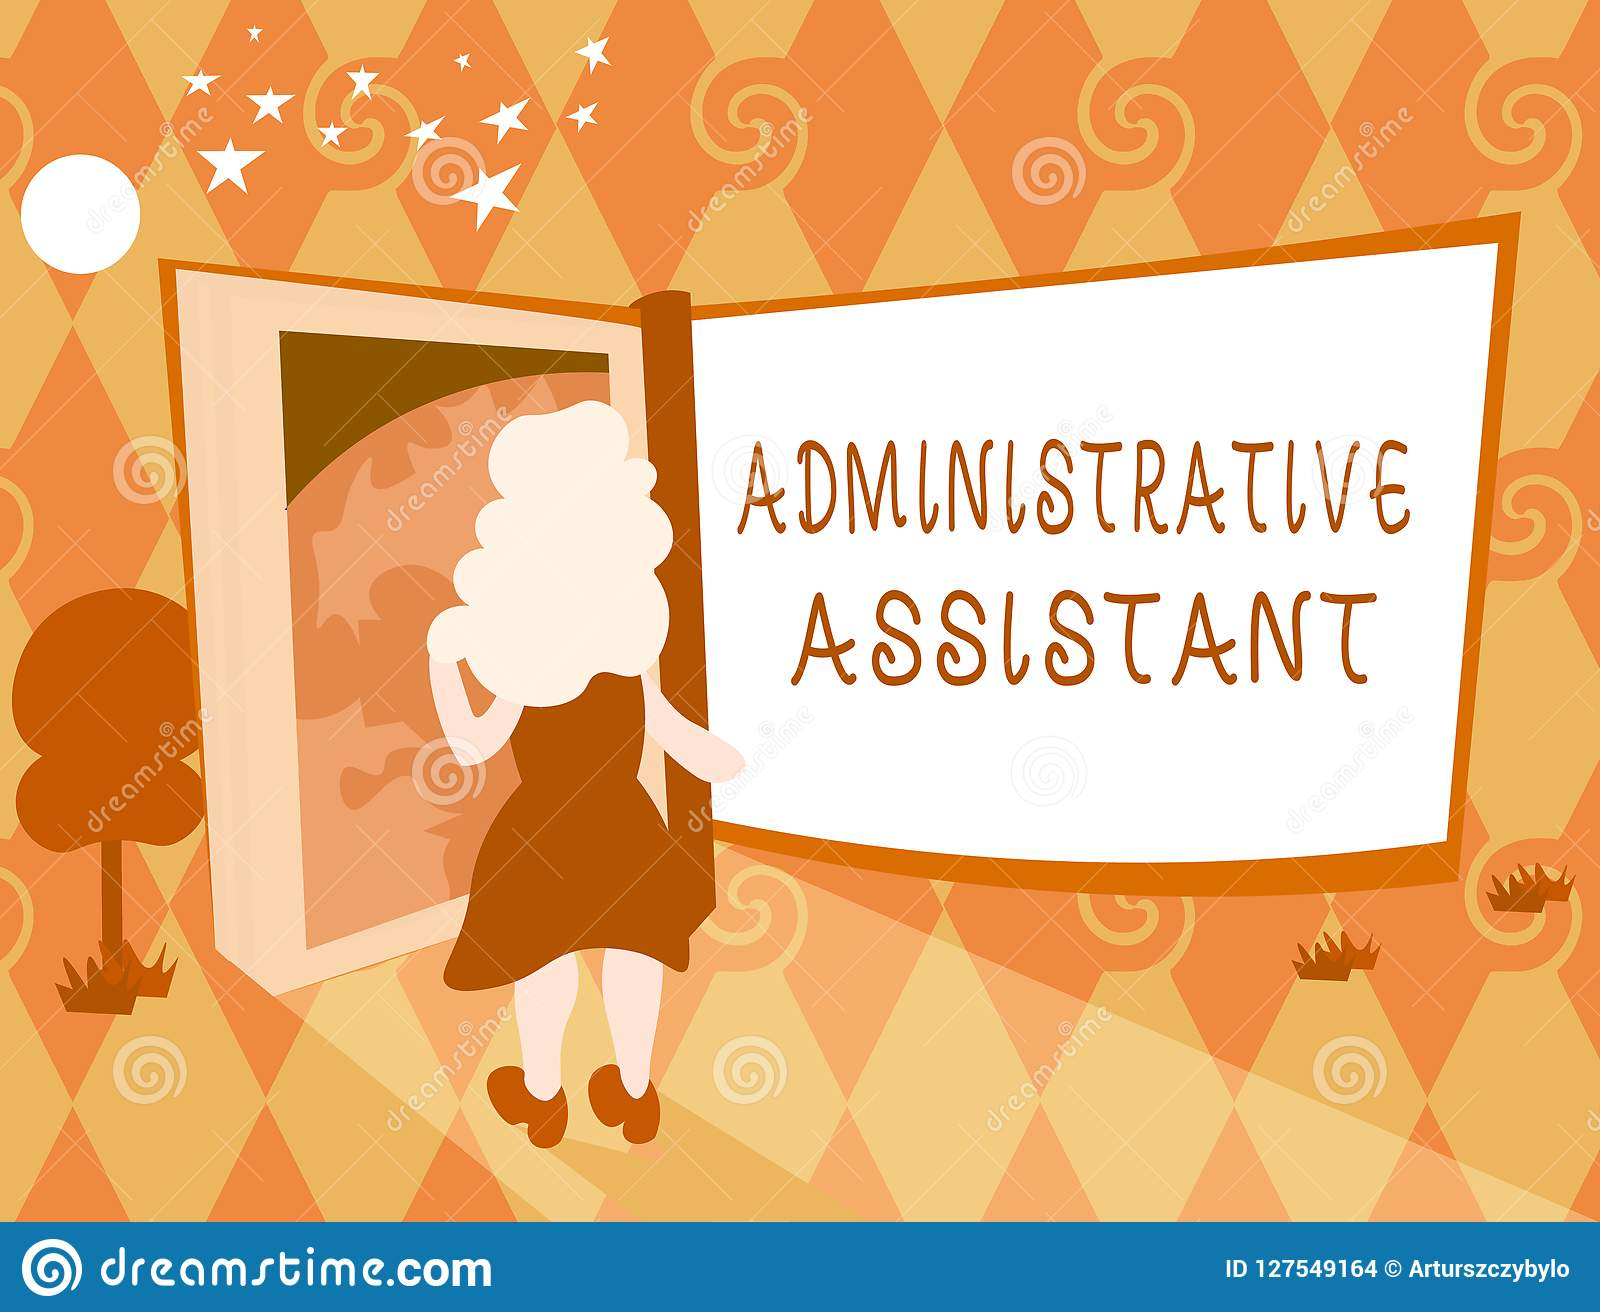 what is the concept of administration